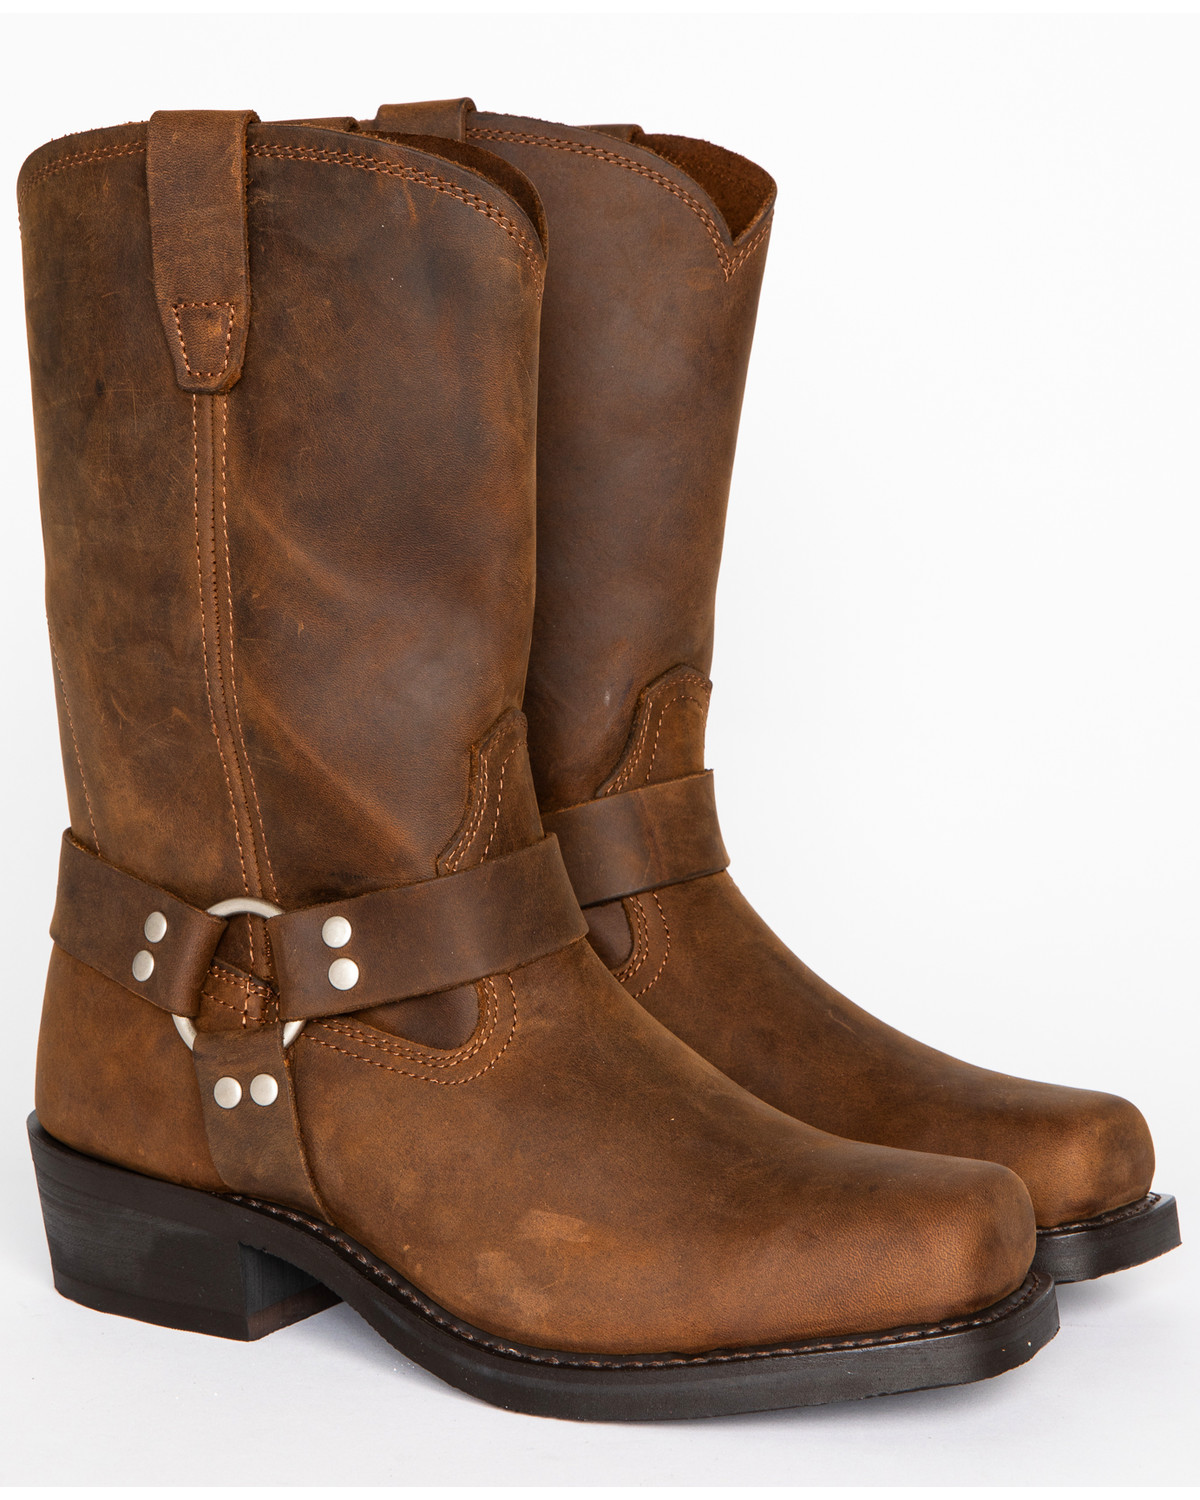 Cody James Men S Brown Harness Boots Square Toe Sheplers